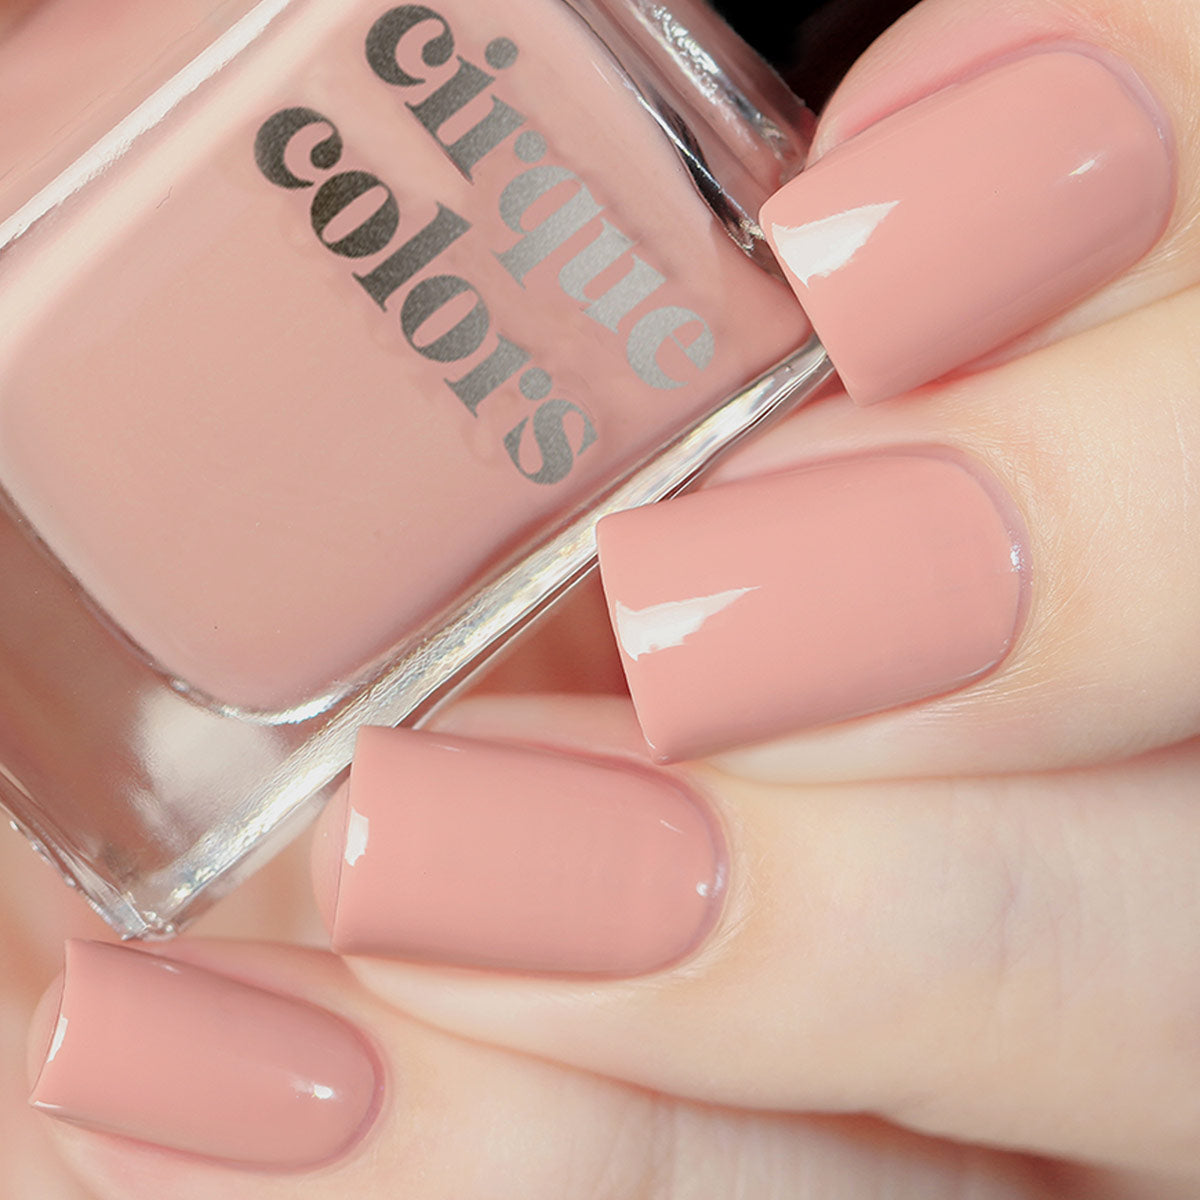 Cirque Colors - Minetta (discontinued - last chance)